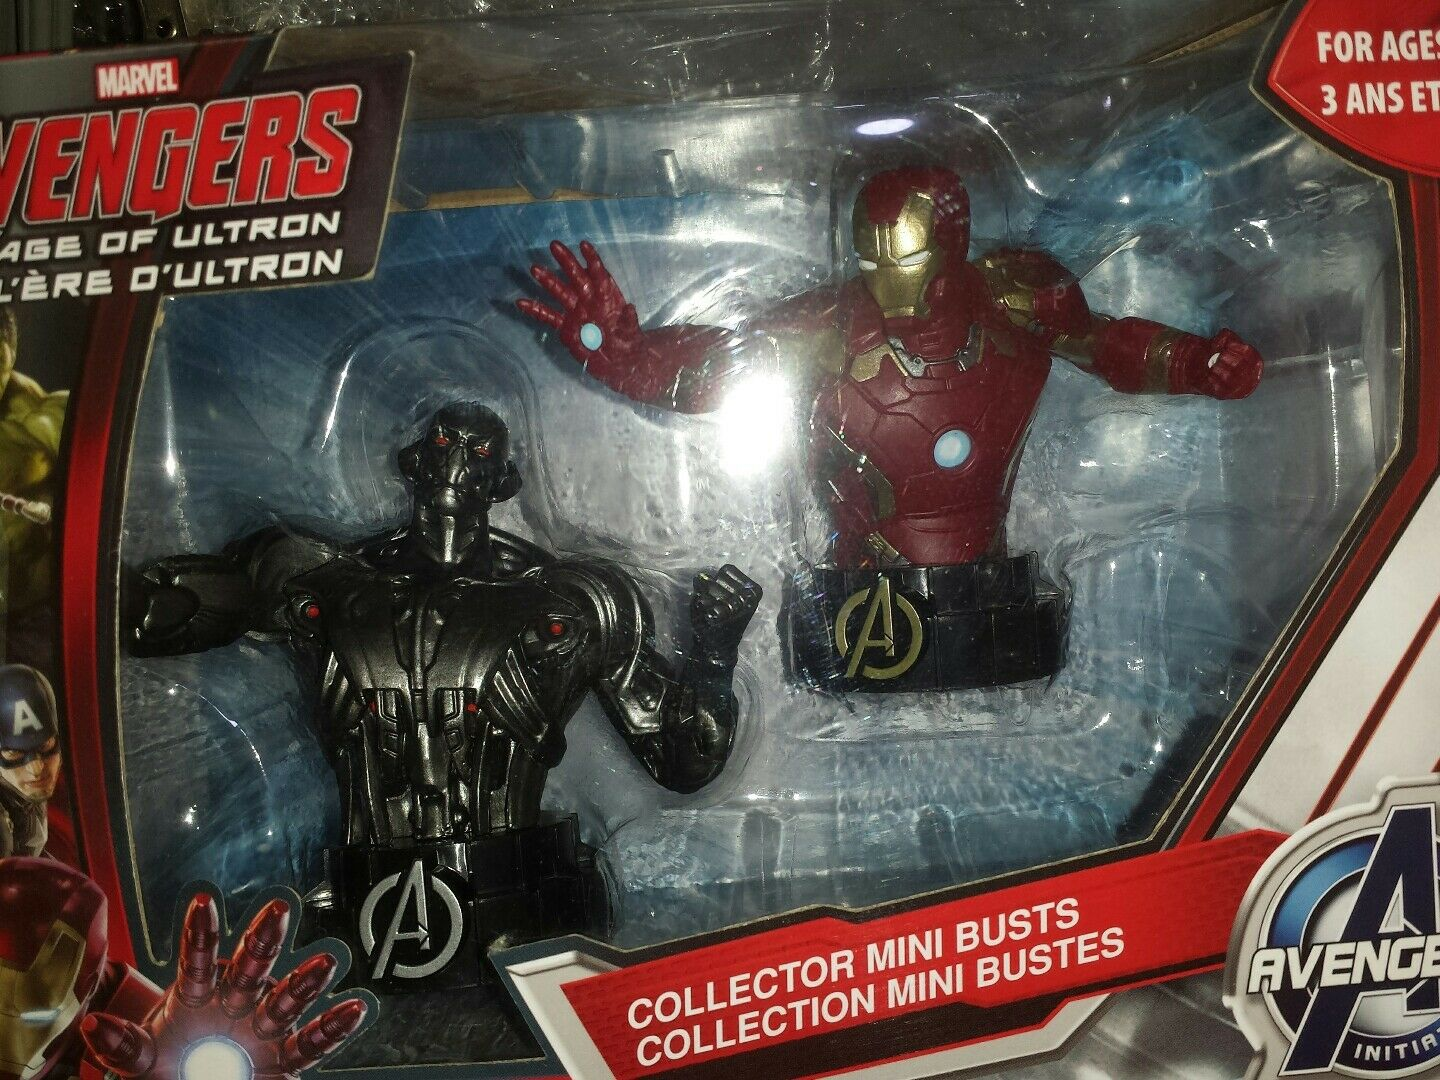 Marvel avengers alter ultron mini - bsten